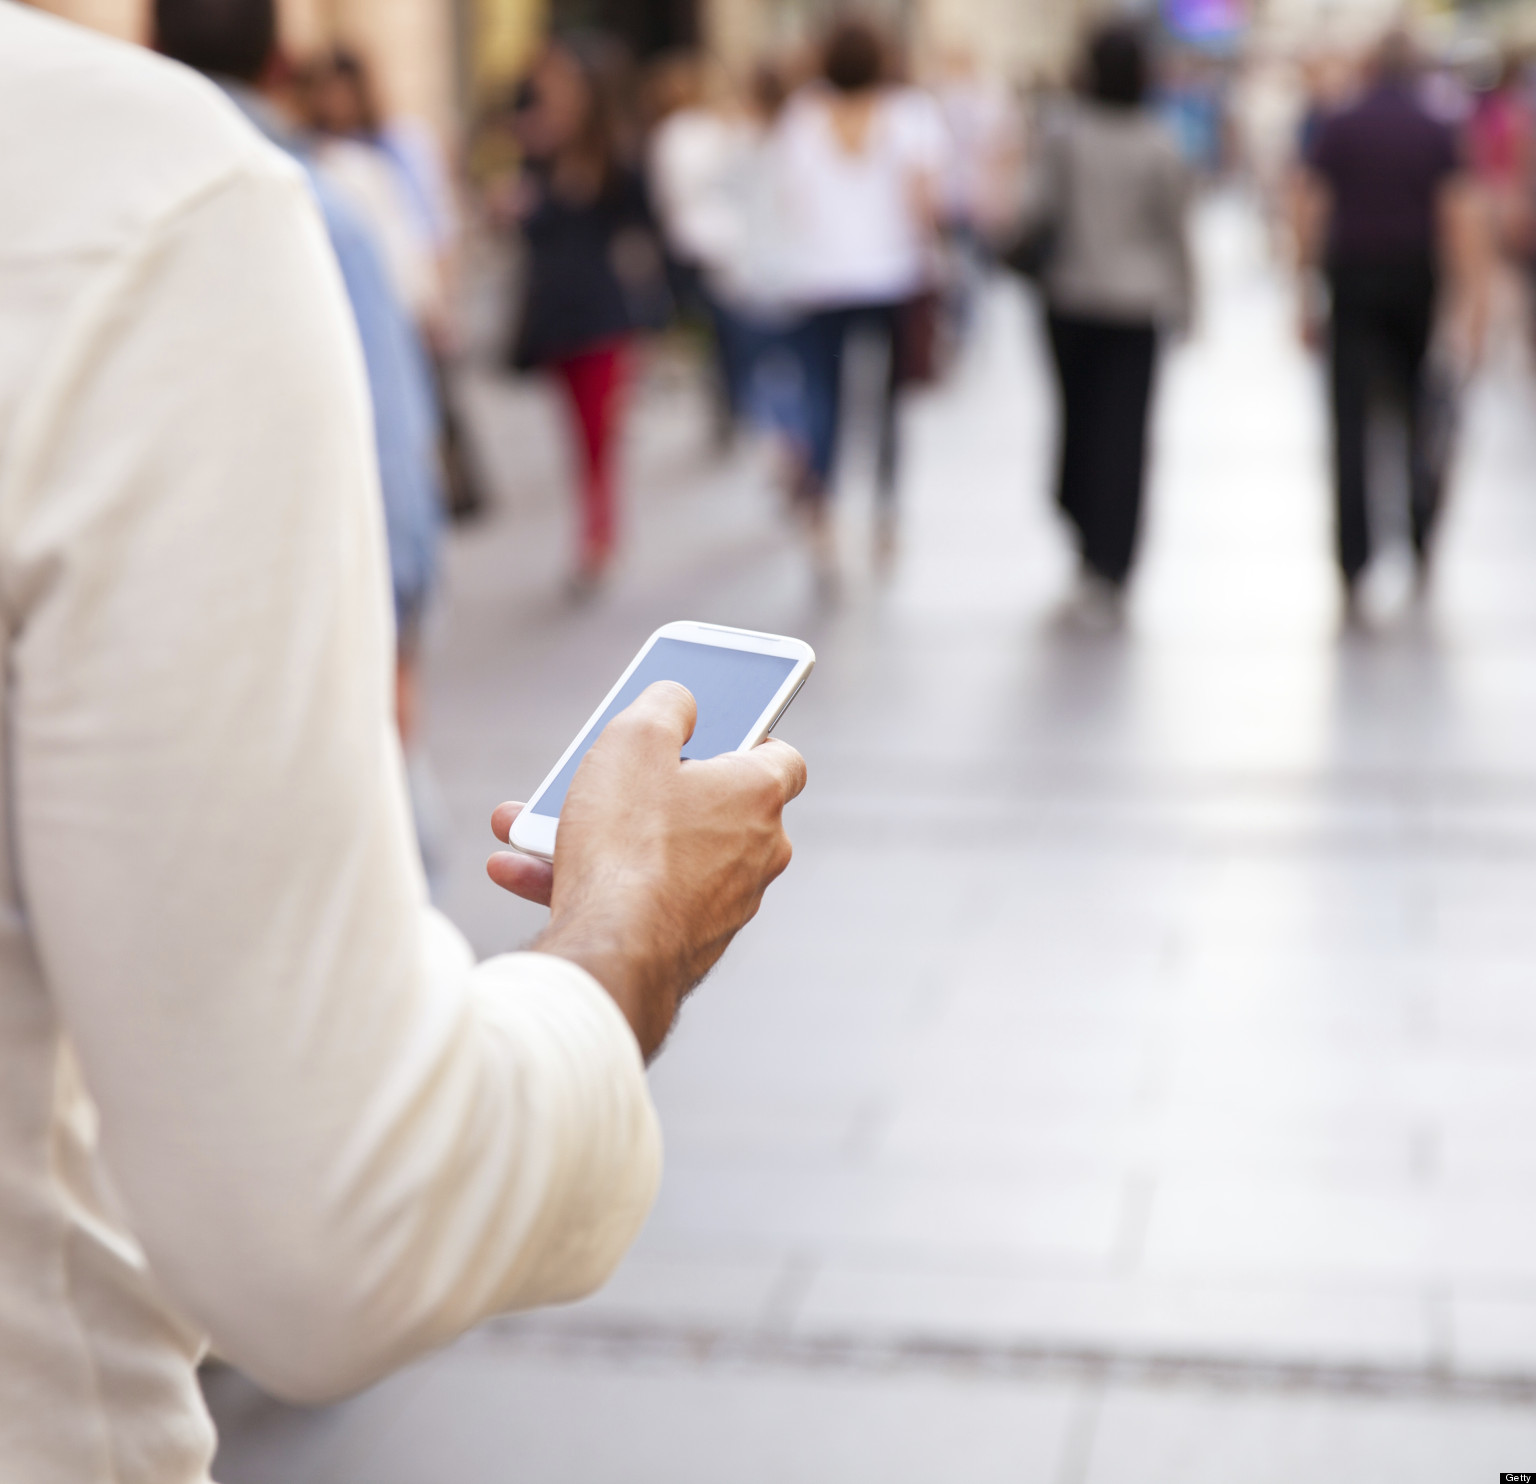 Distracted Walking Injuries From Cell Phone Use More Than Double Since ...